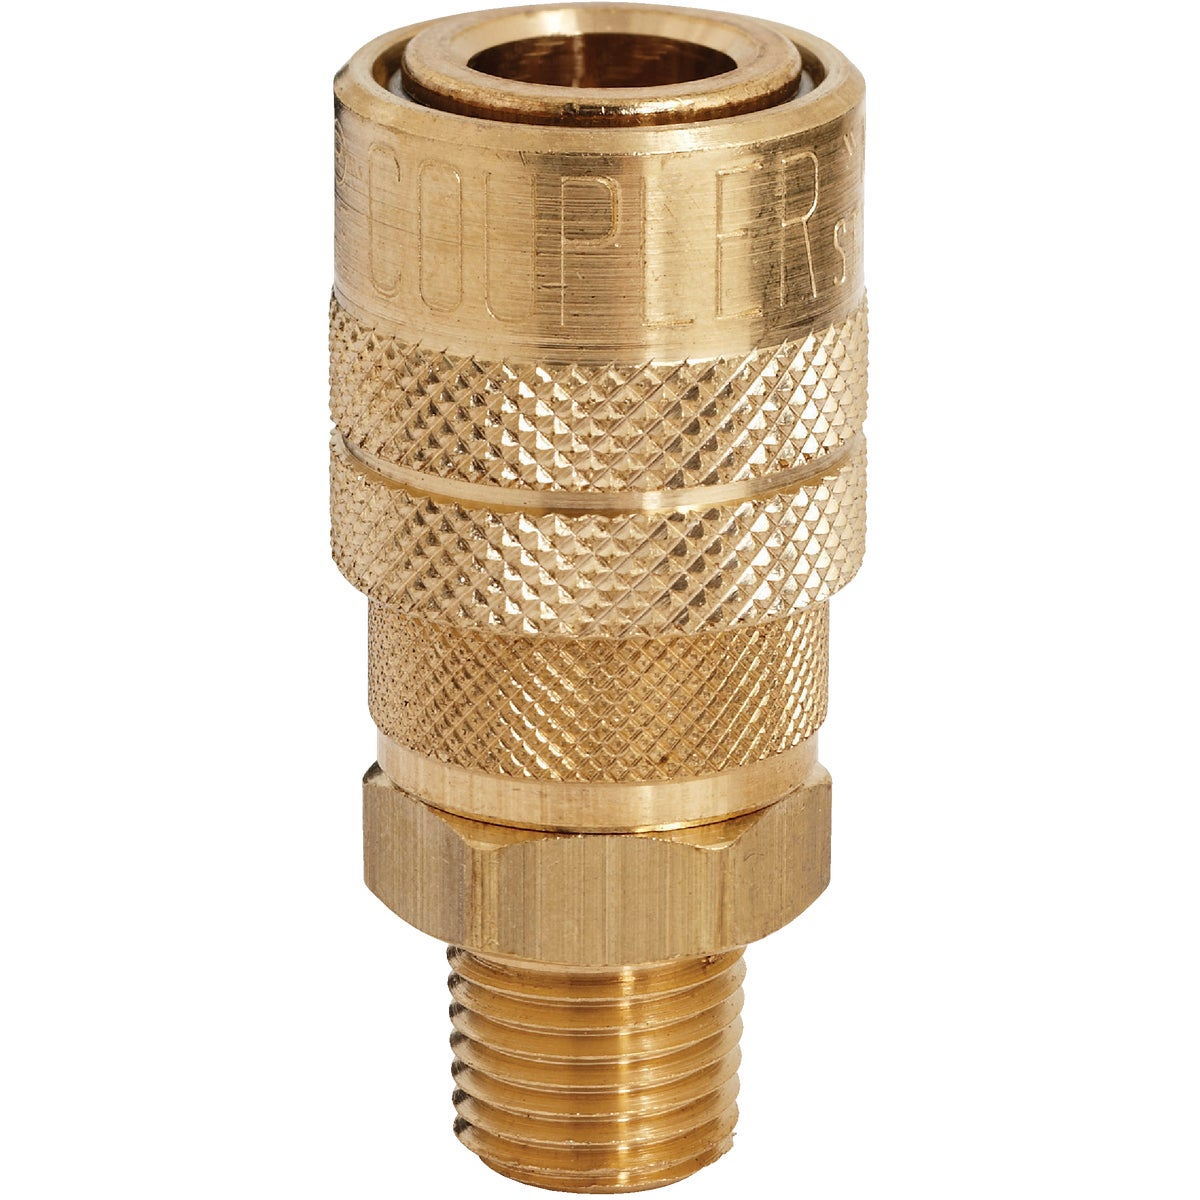 1/4 MALE M STYLE COUPLER - S-716 by Milton Ind/ Incom